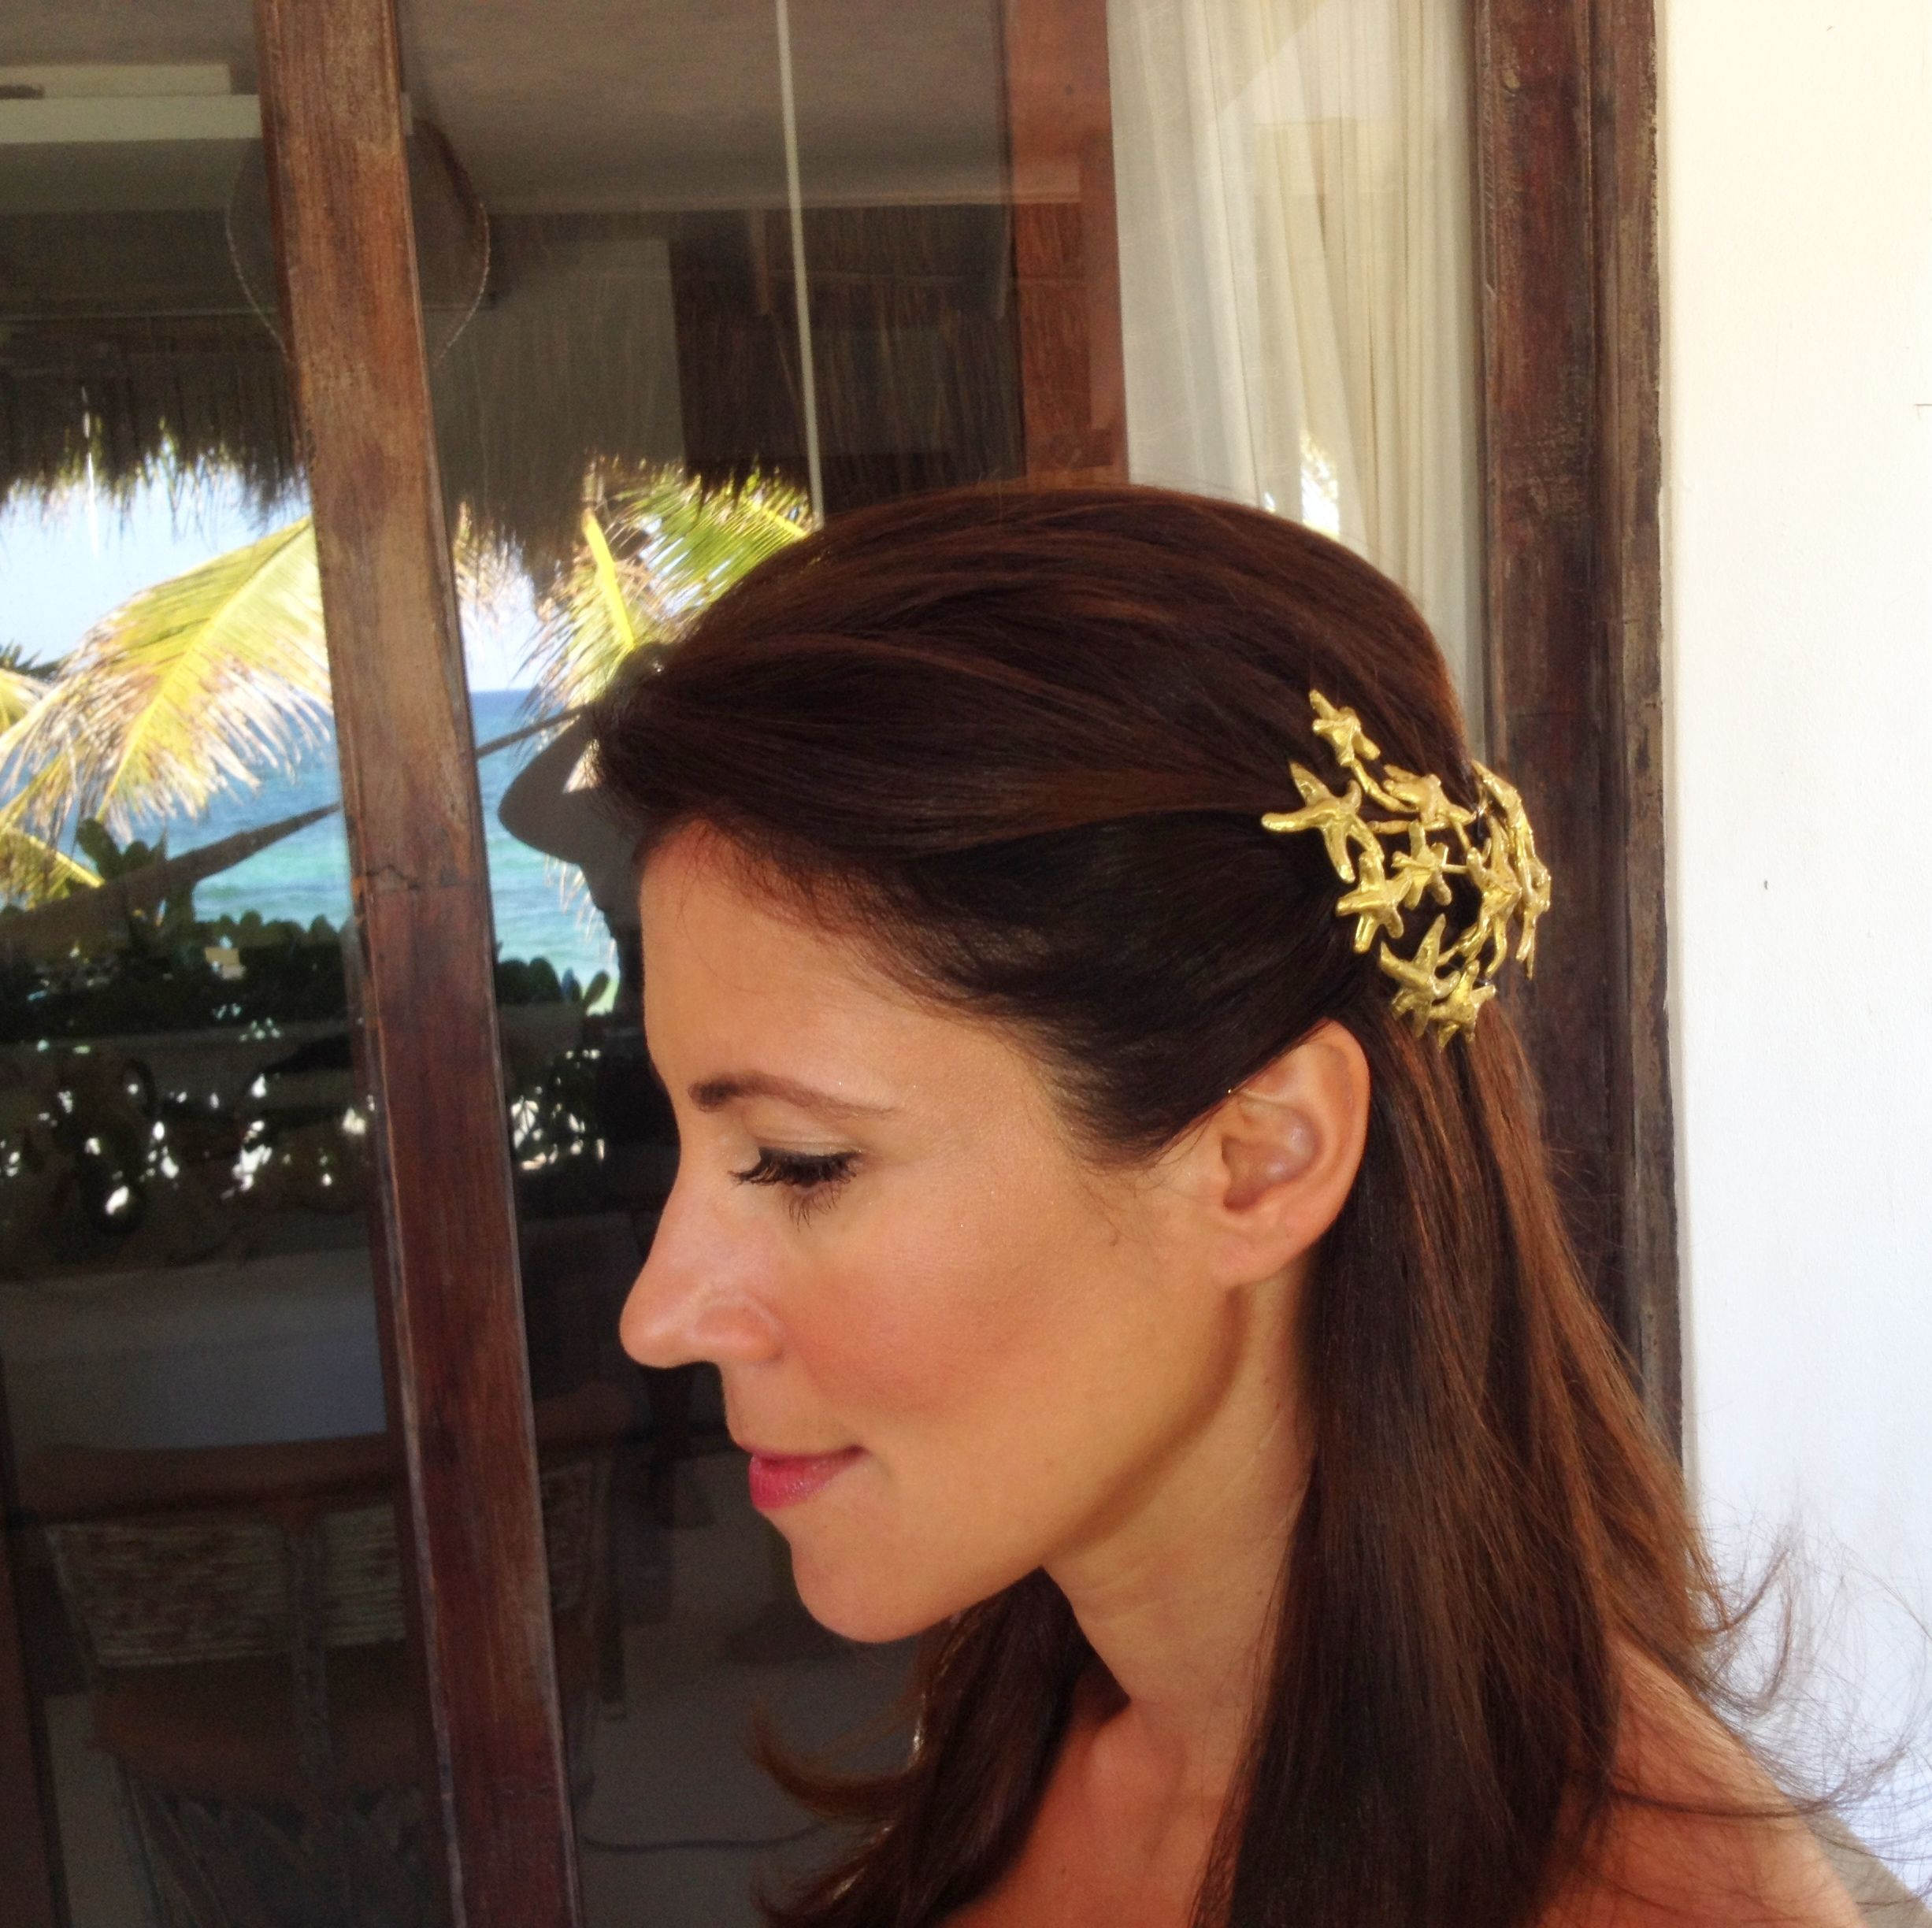 Master of ceremonies introductions wedding hairstyles